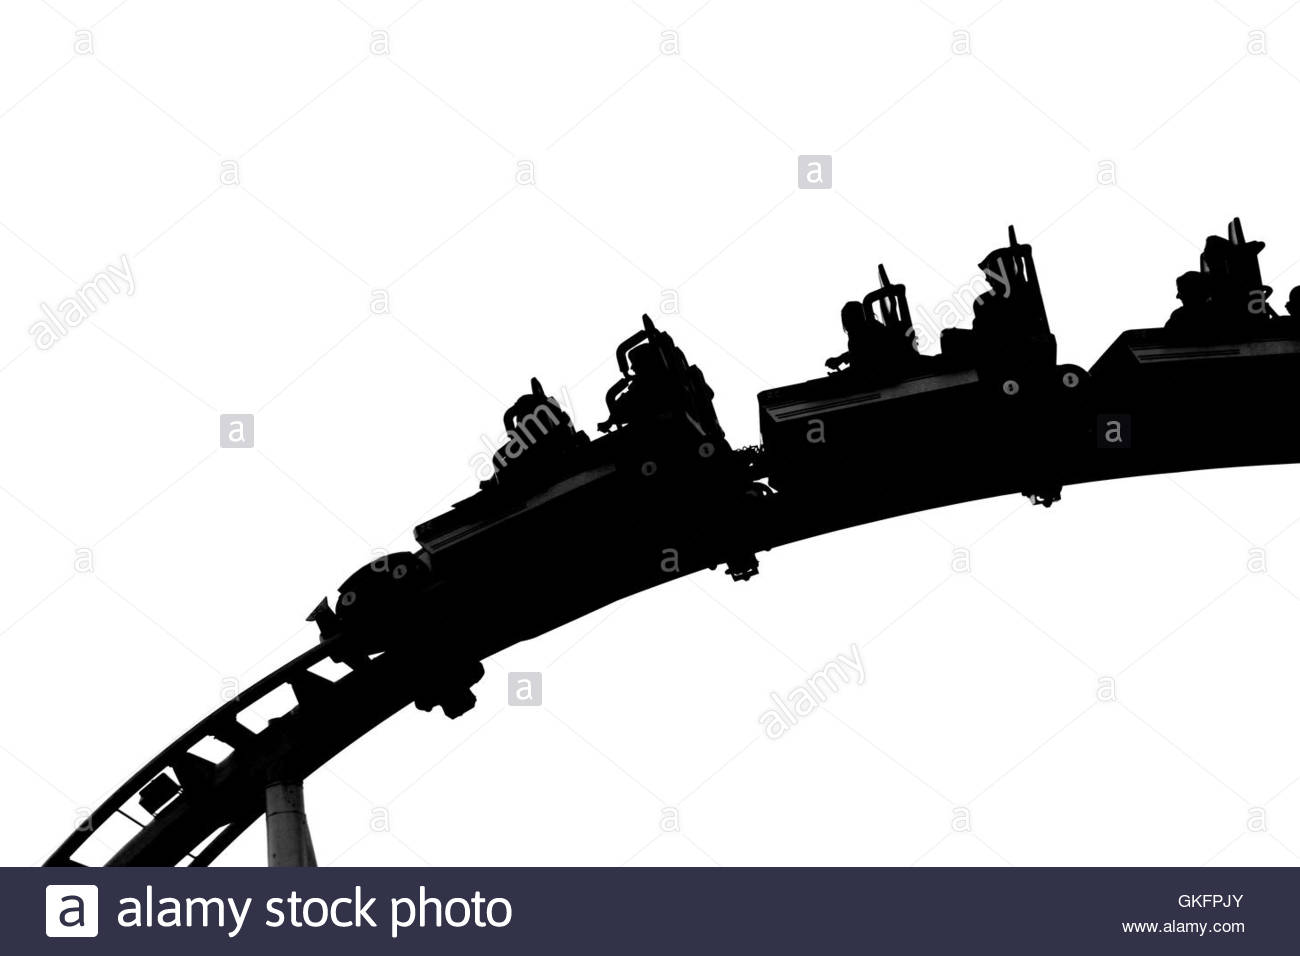 1300x956 Rollercoaster Black And White Stock Photos Amp Images